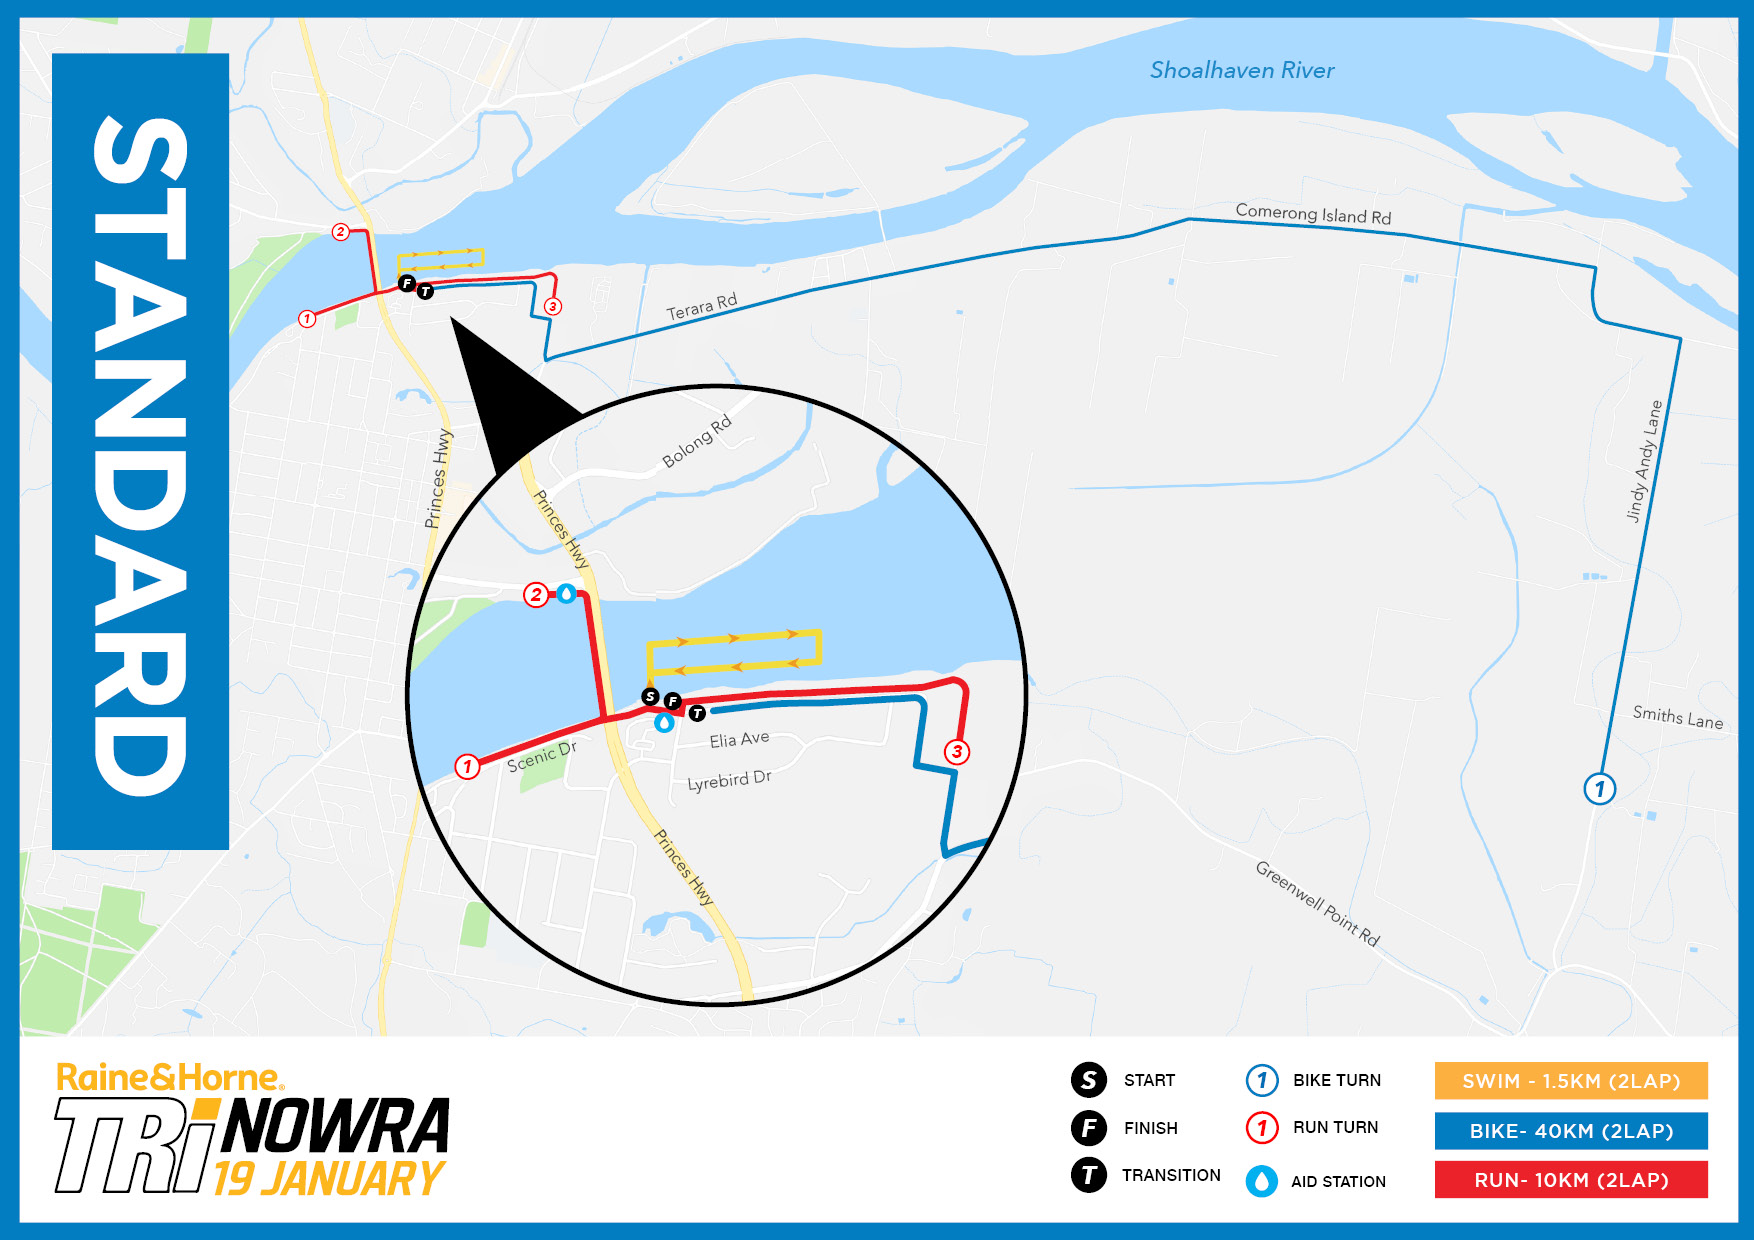 https://www.eliteenergy.com.au/wp-content/uploads/2017/07/Nowra-19-Maps-Standard.jpg